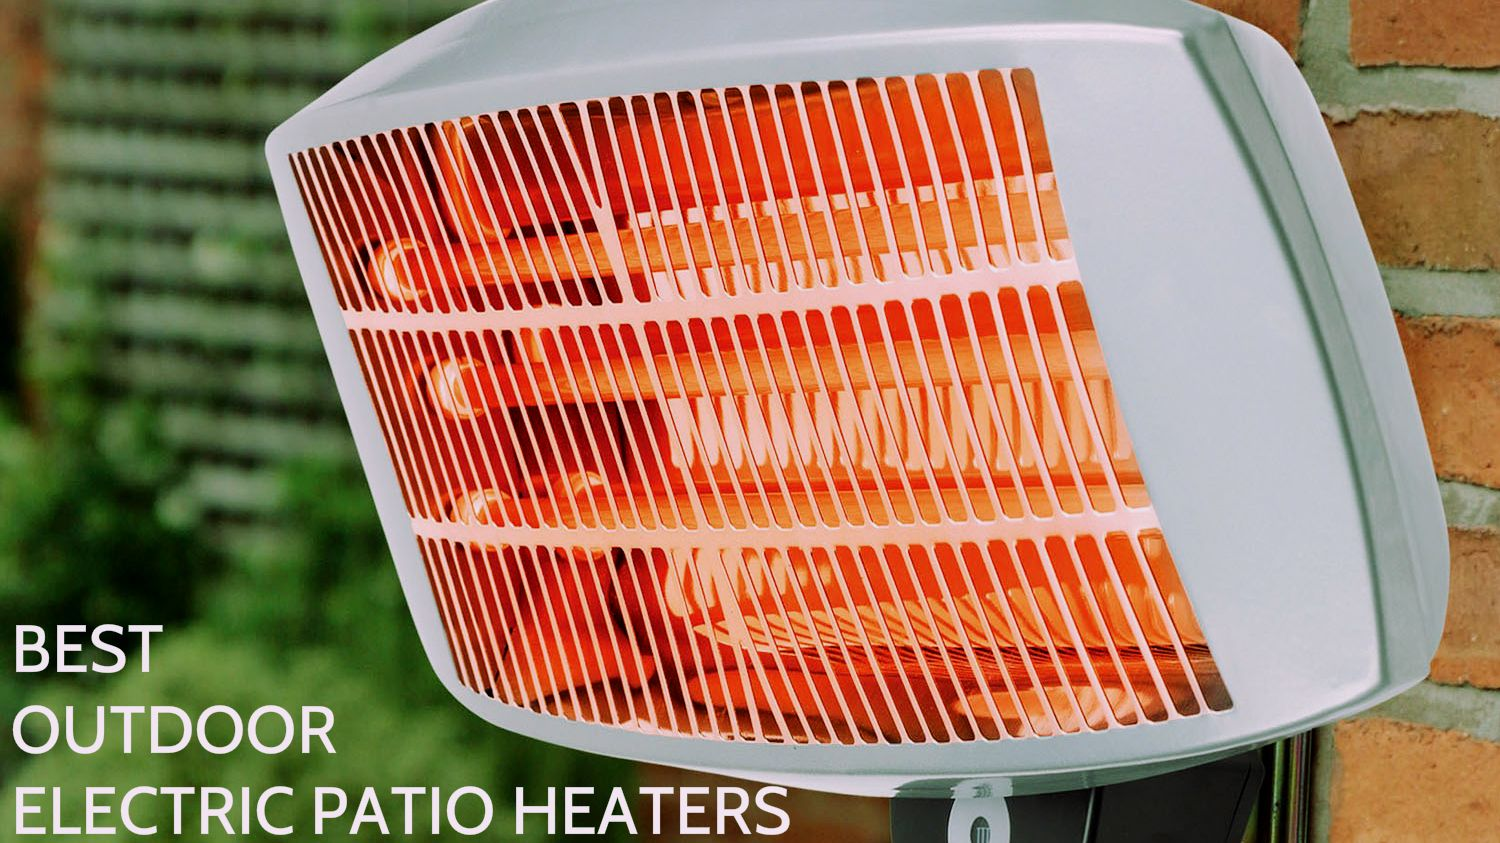 Best outdoor electric patio heaters | heatwhiz.com